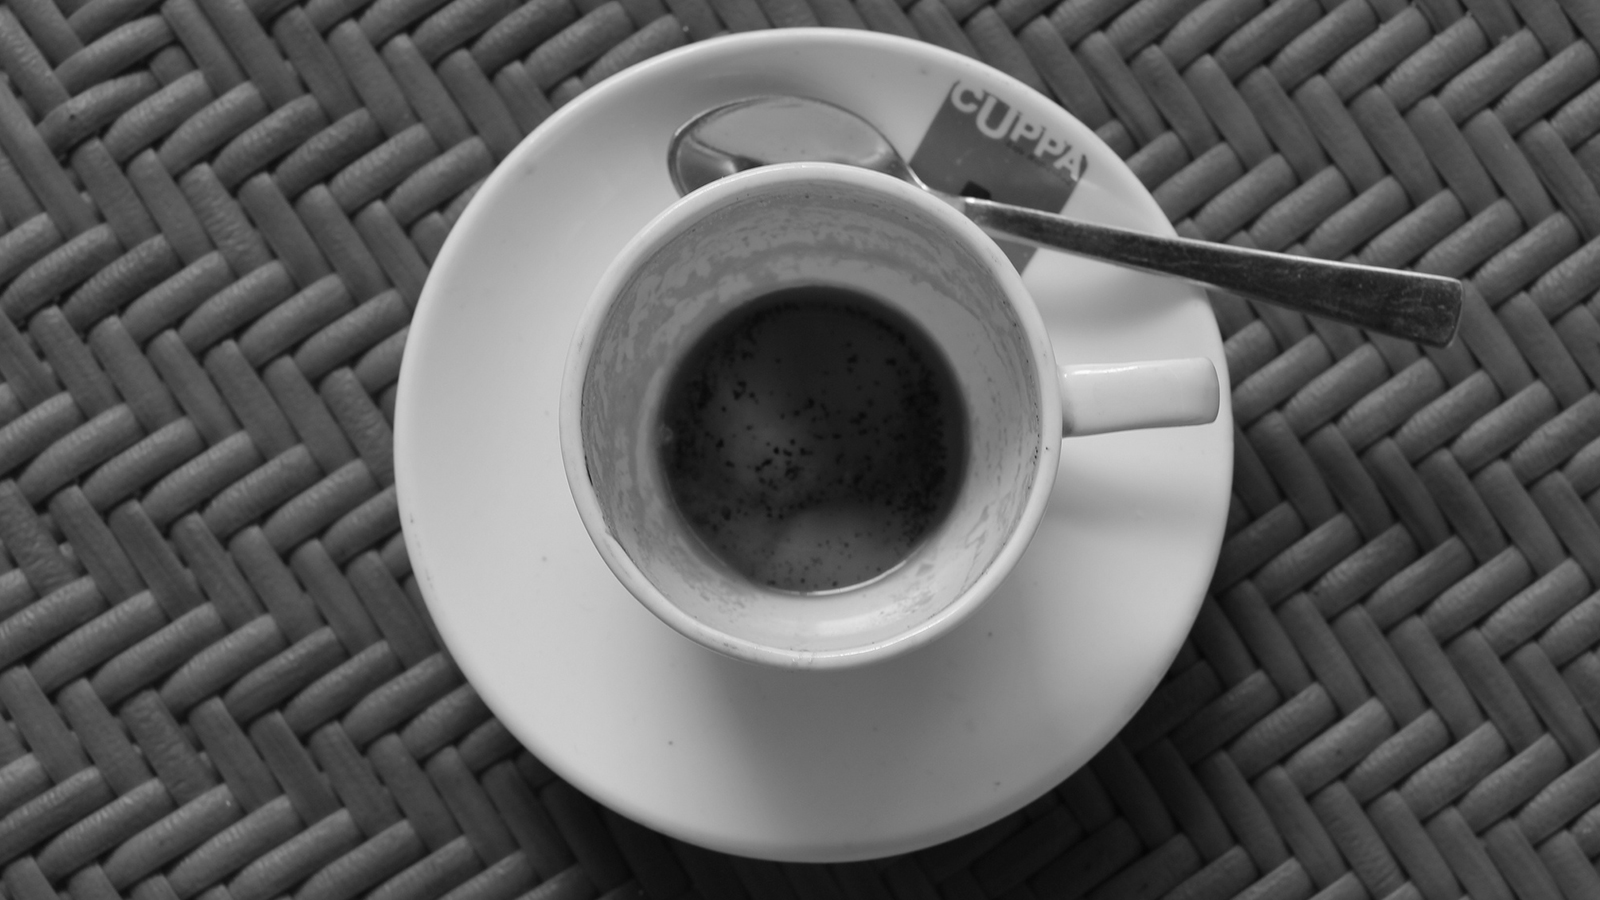 Yale scientists say putting this in your coffee isn't as bad as you thought it was